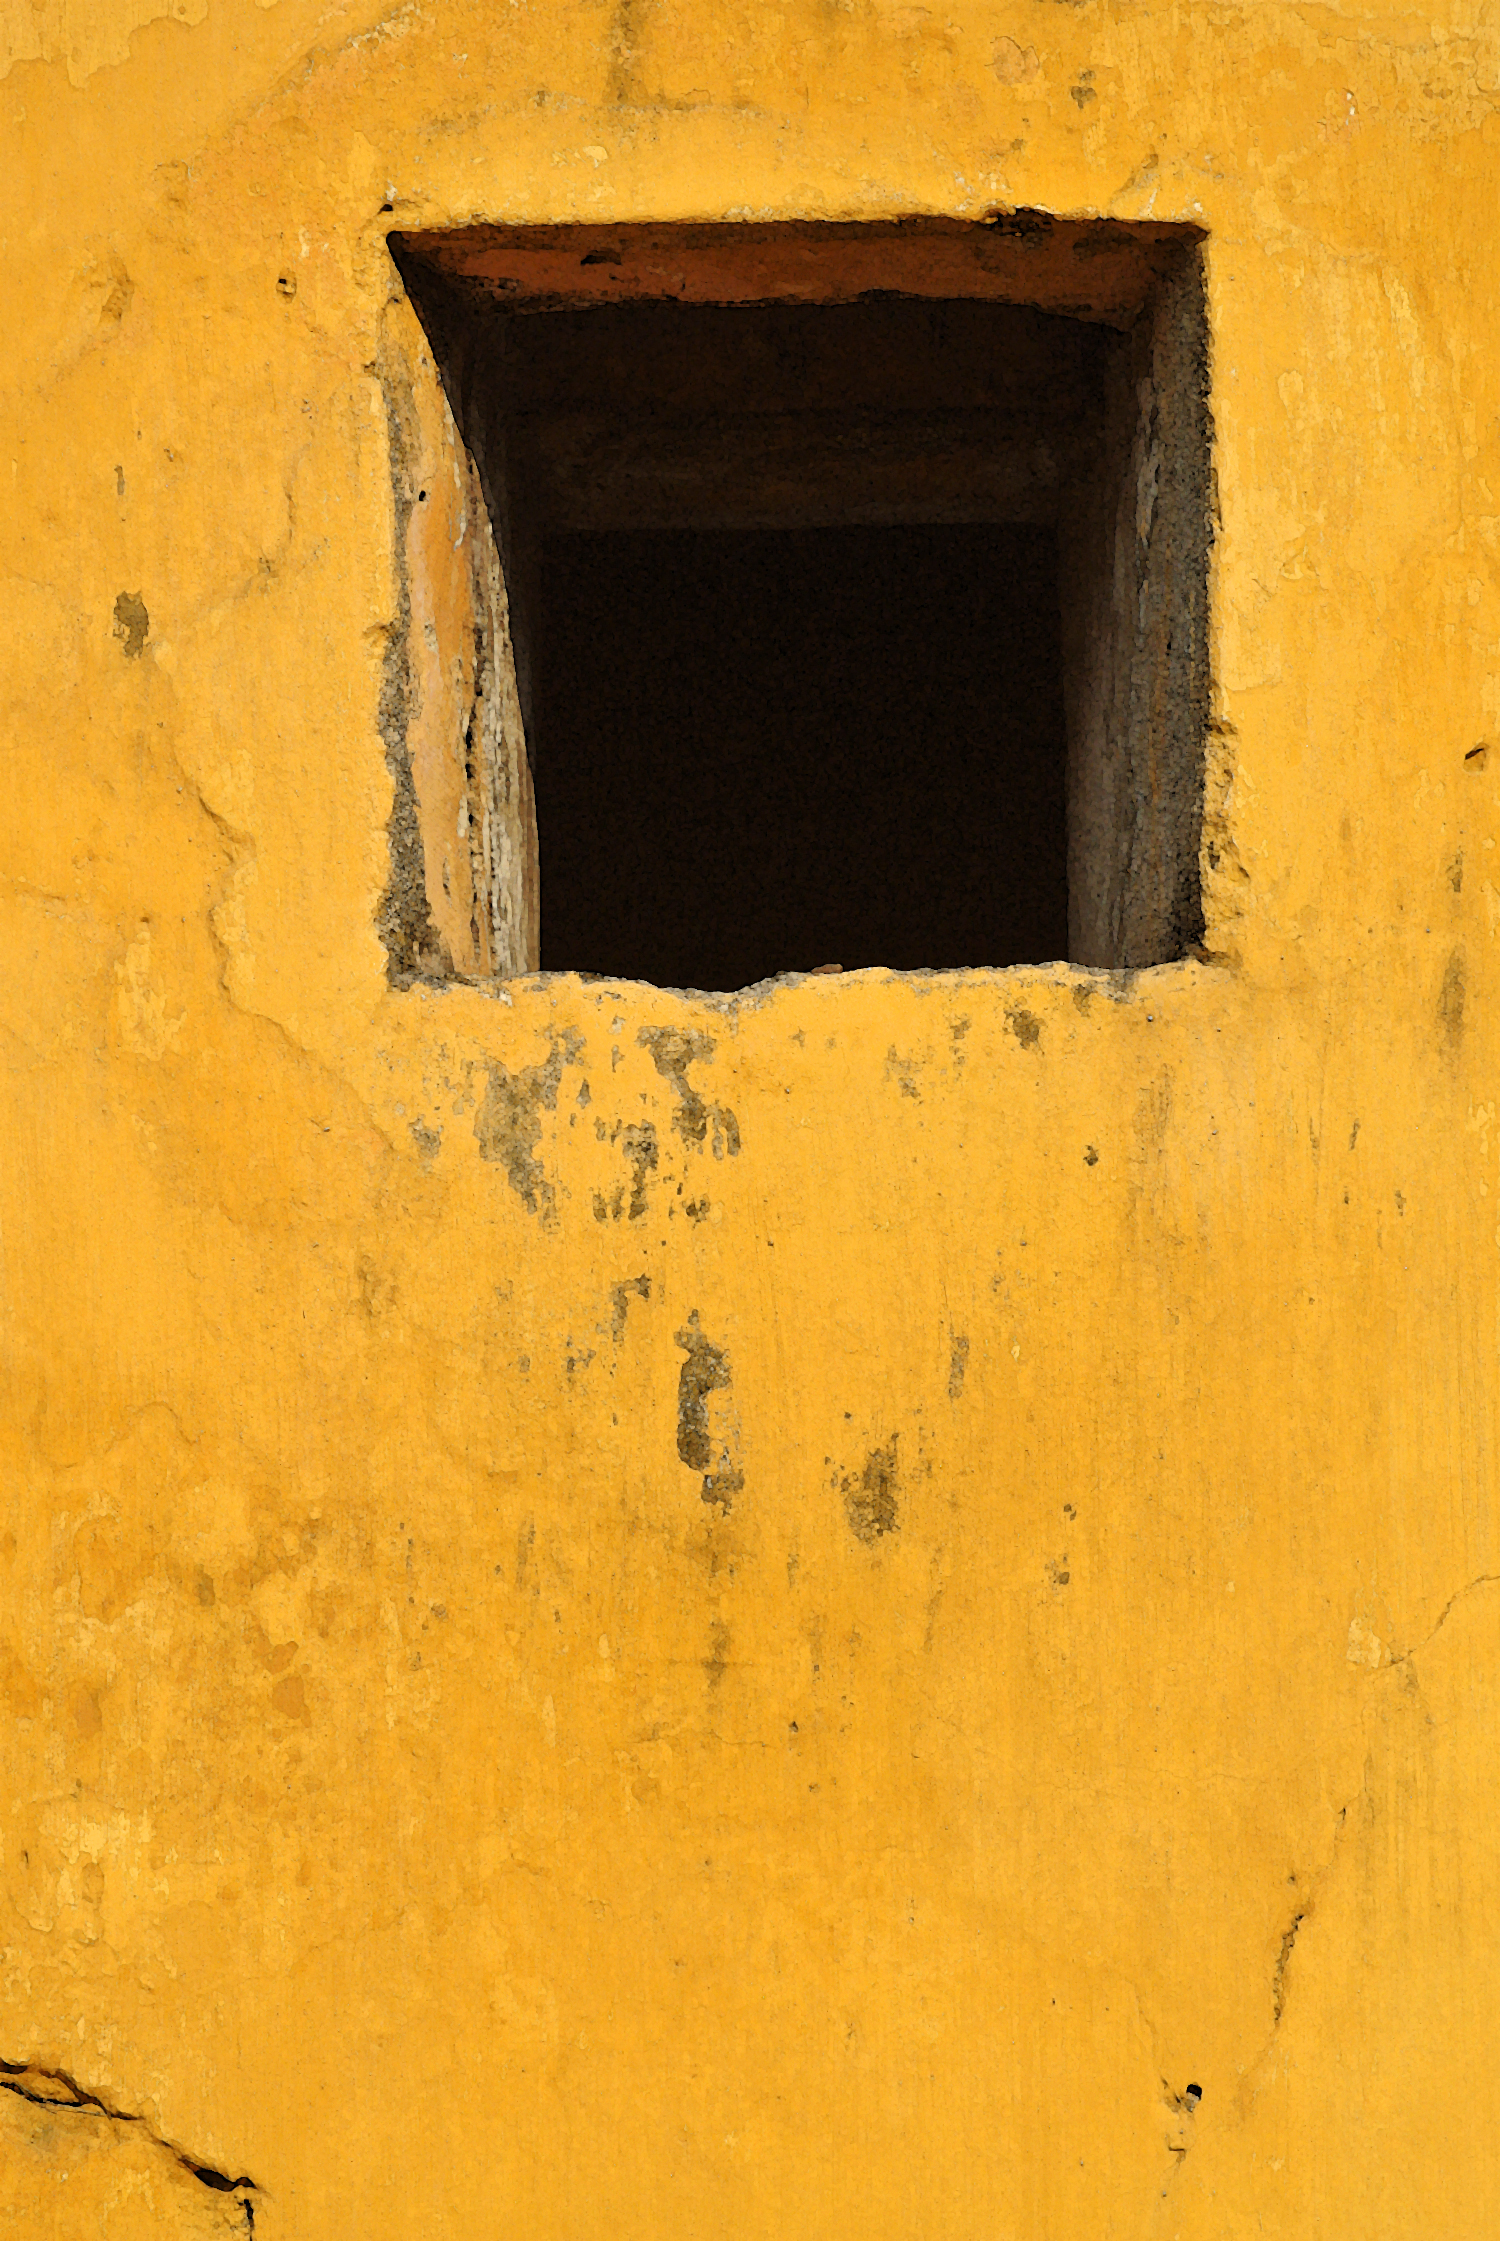 hoi-an-orange-wall-with-hole.jpg